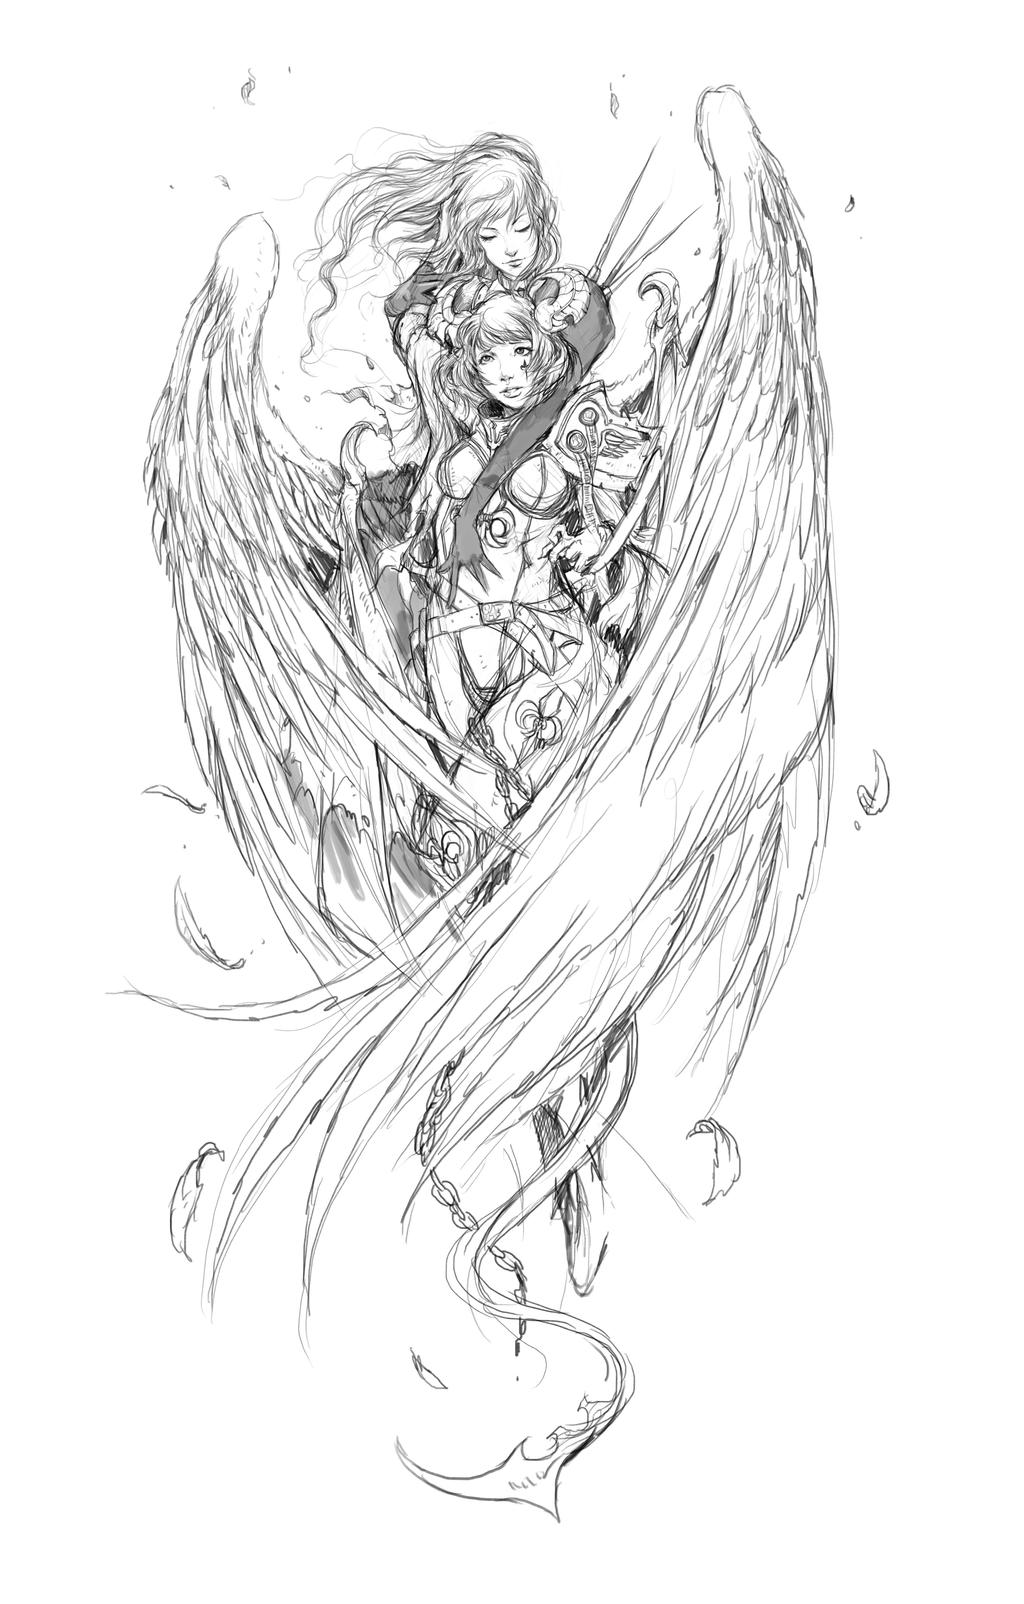 Yin Yang Wolfs Tattoo 328628885 moreover Fairy Tattoo Outlines furthermore Warrior Angel 294916199 additionally Beautiful Angel Coloring Pages For Adults Sketch Templates in addition Mannequin Outline. on anime angels and demons